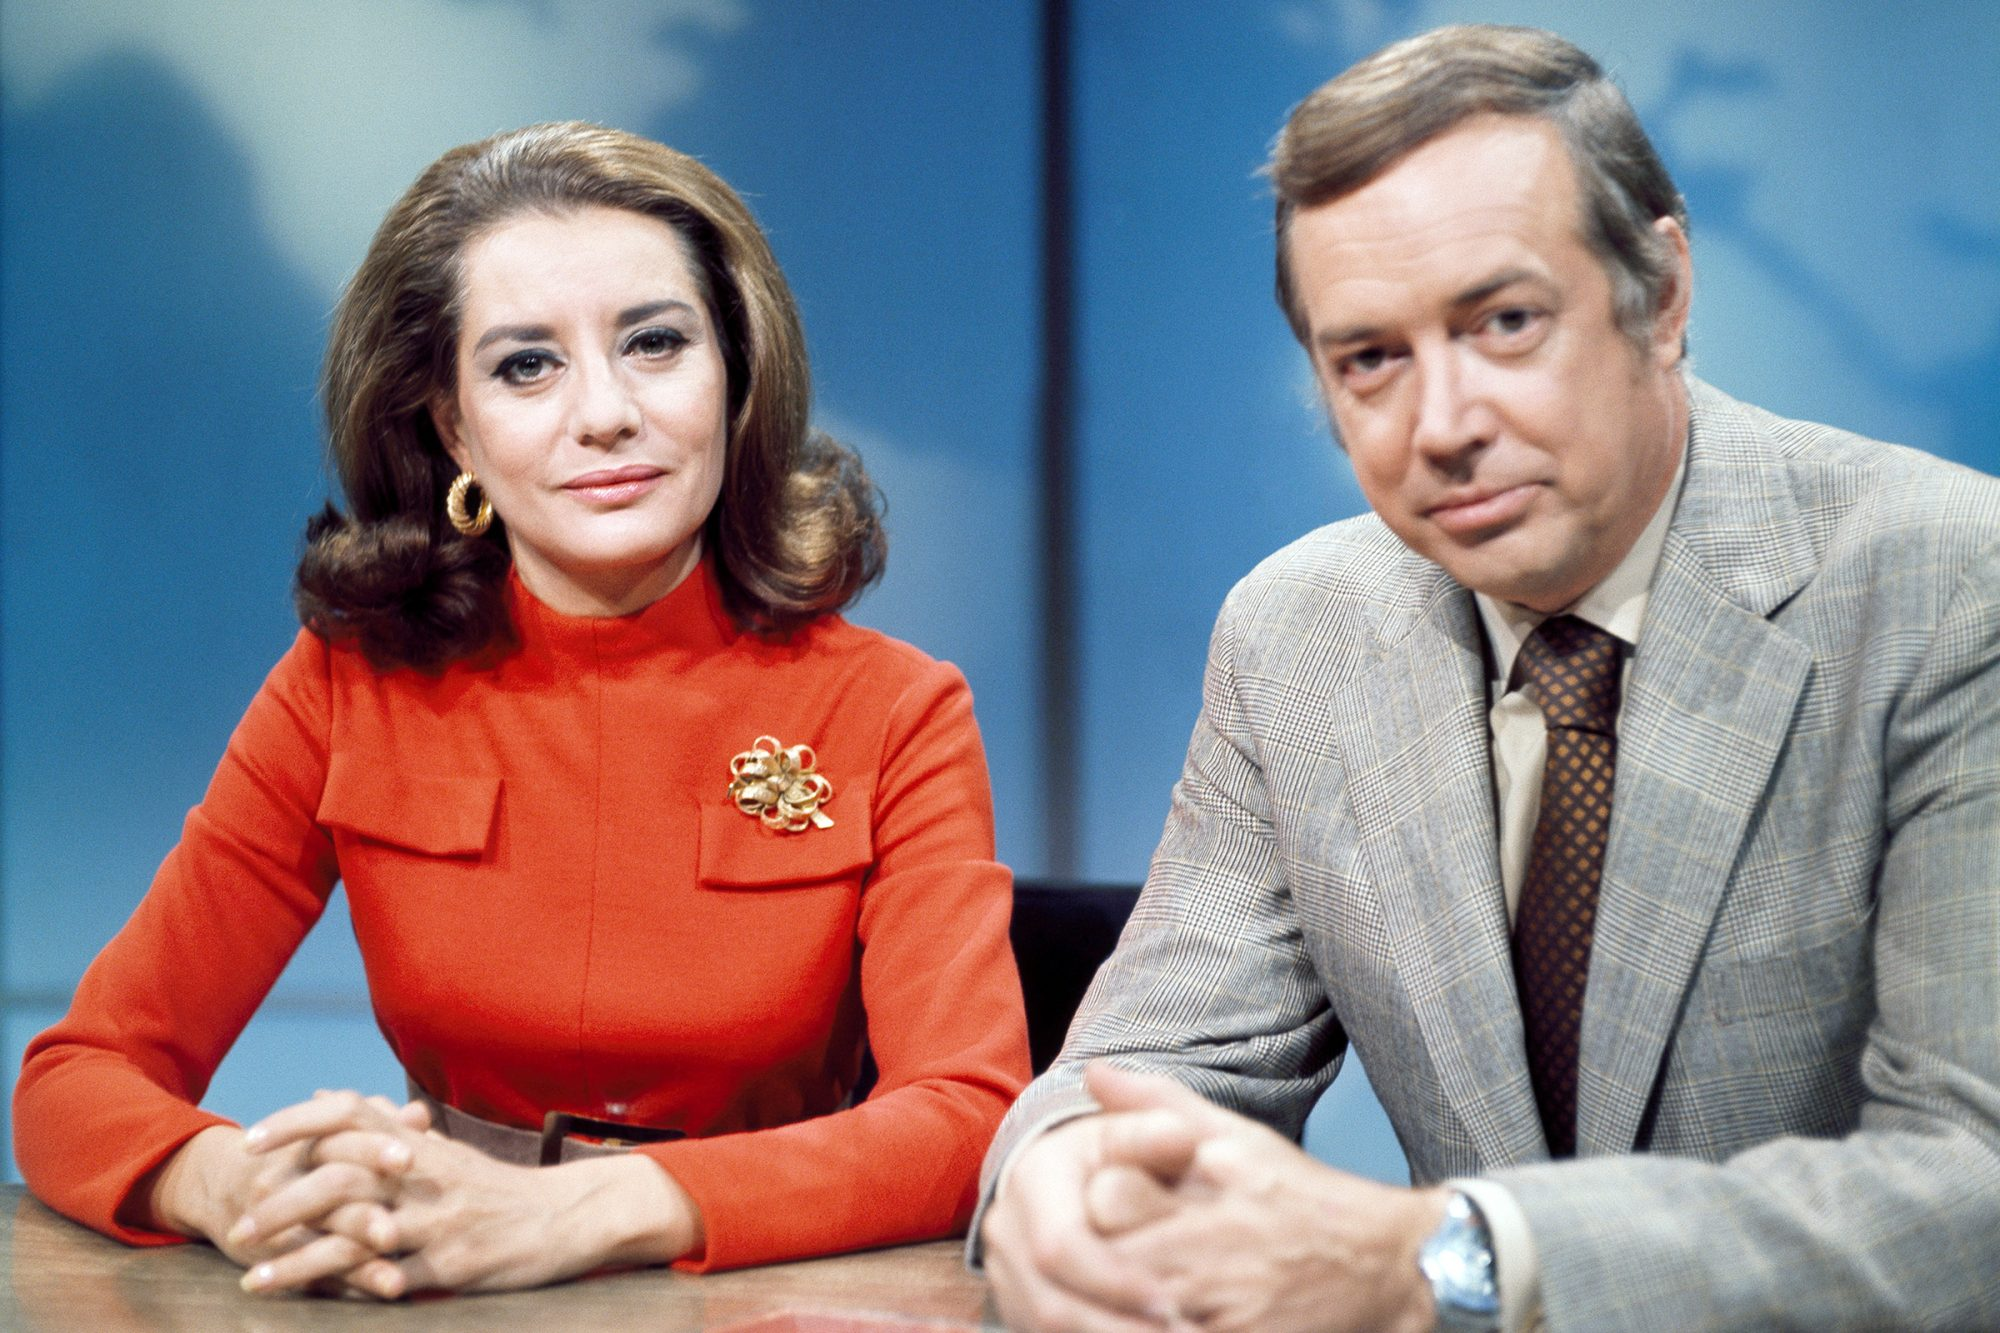 Hugh Downs Barbara Walters Today Show